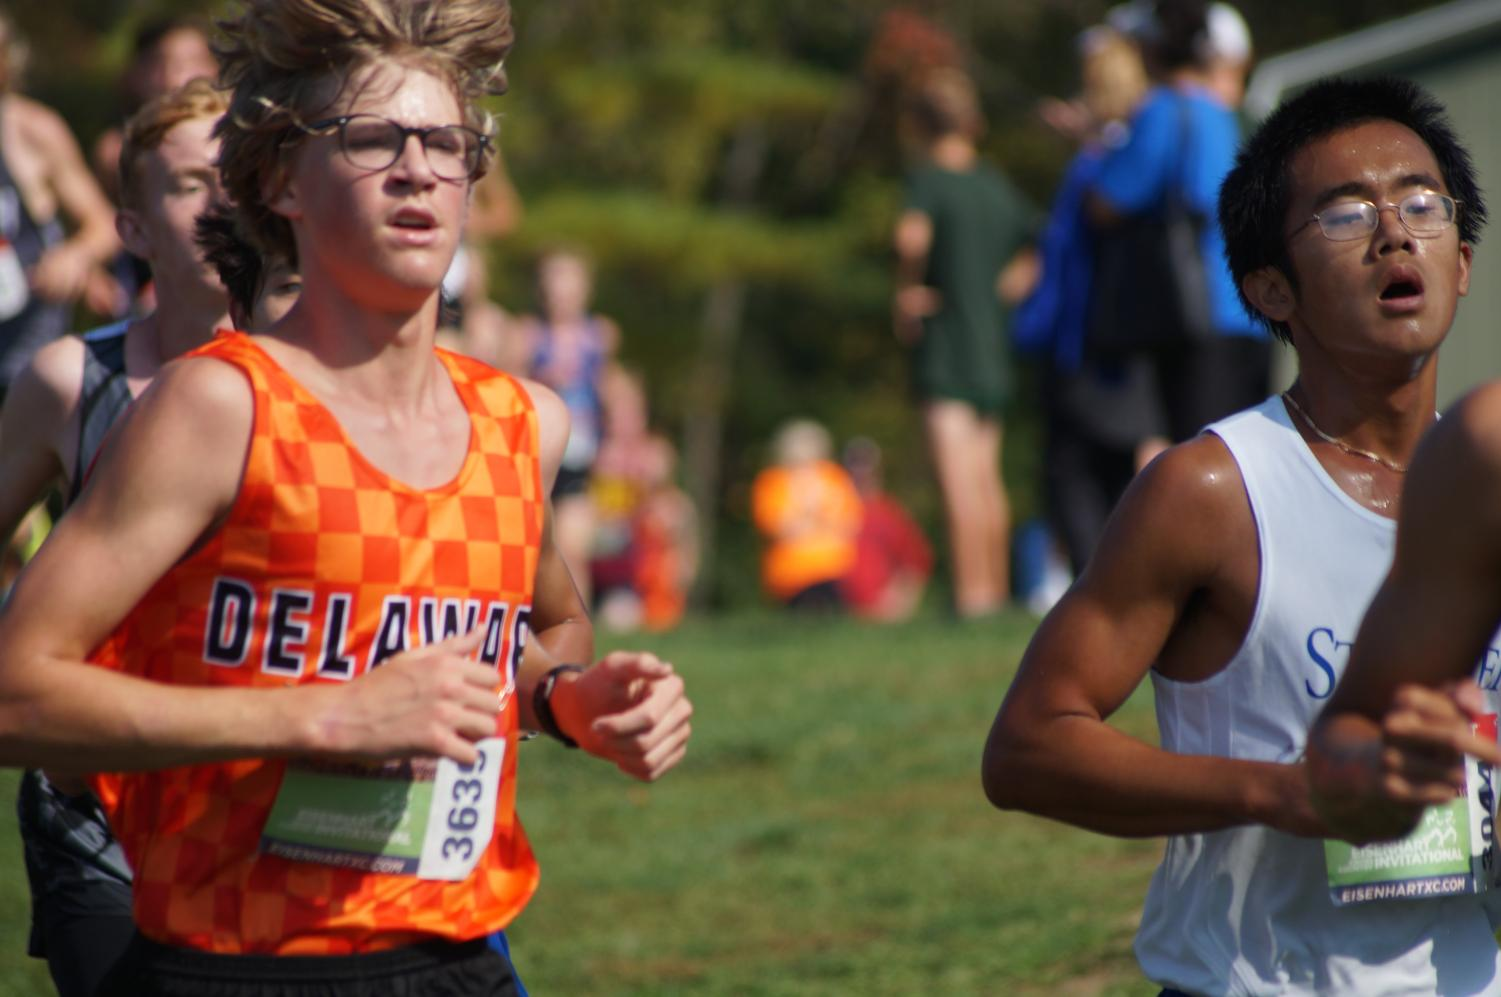 Cross+Country+team+competes+at+Eisenhart+Invitational